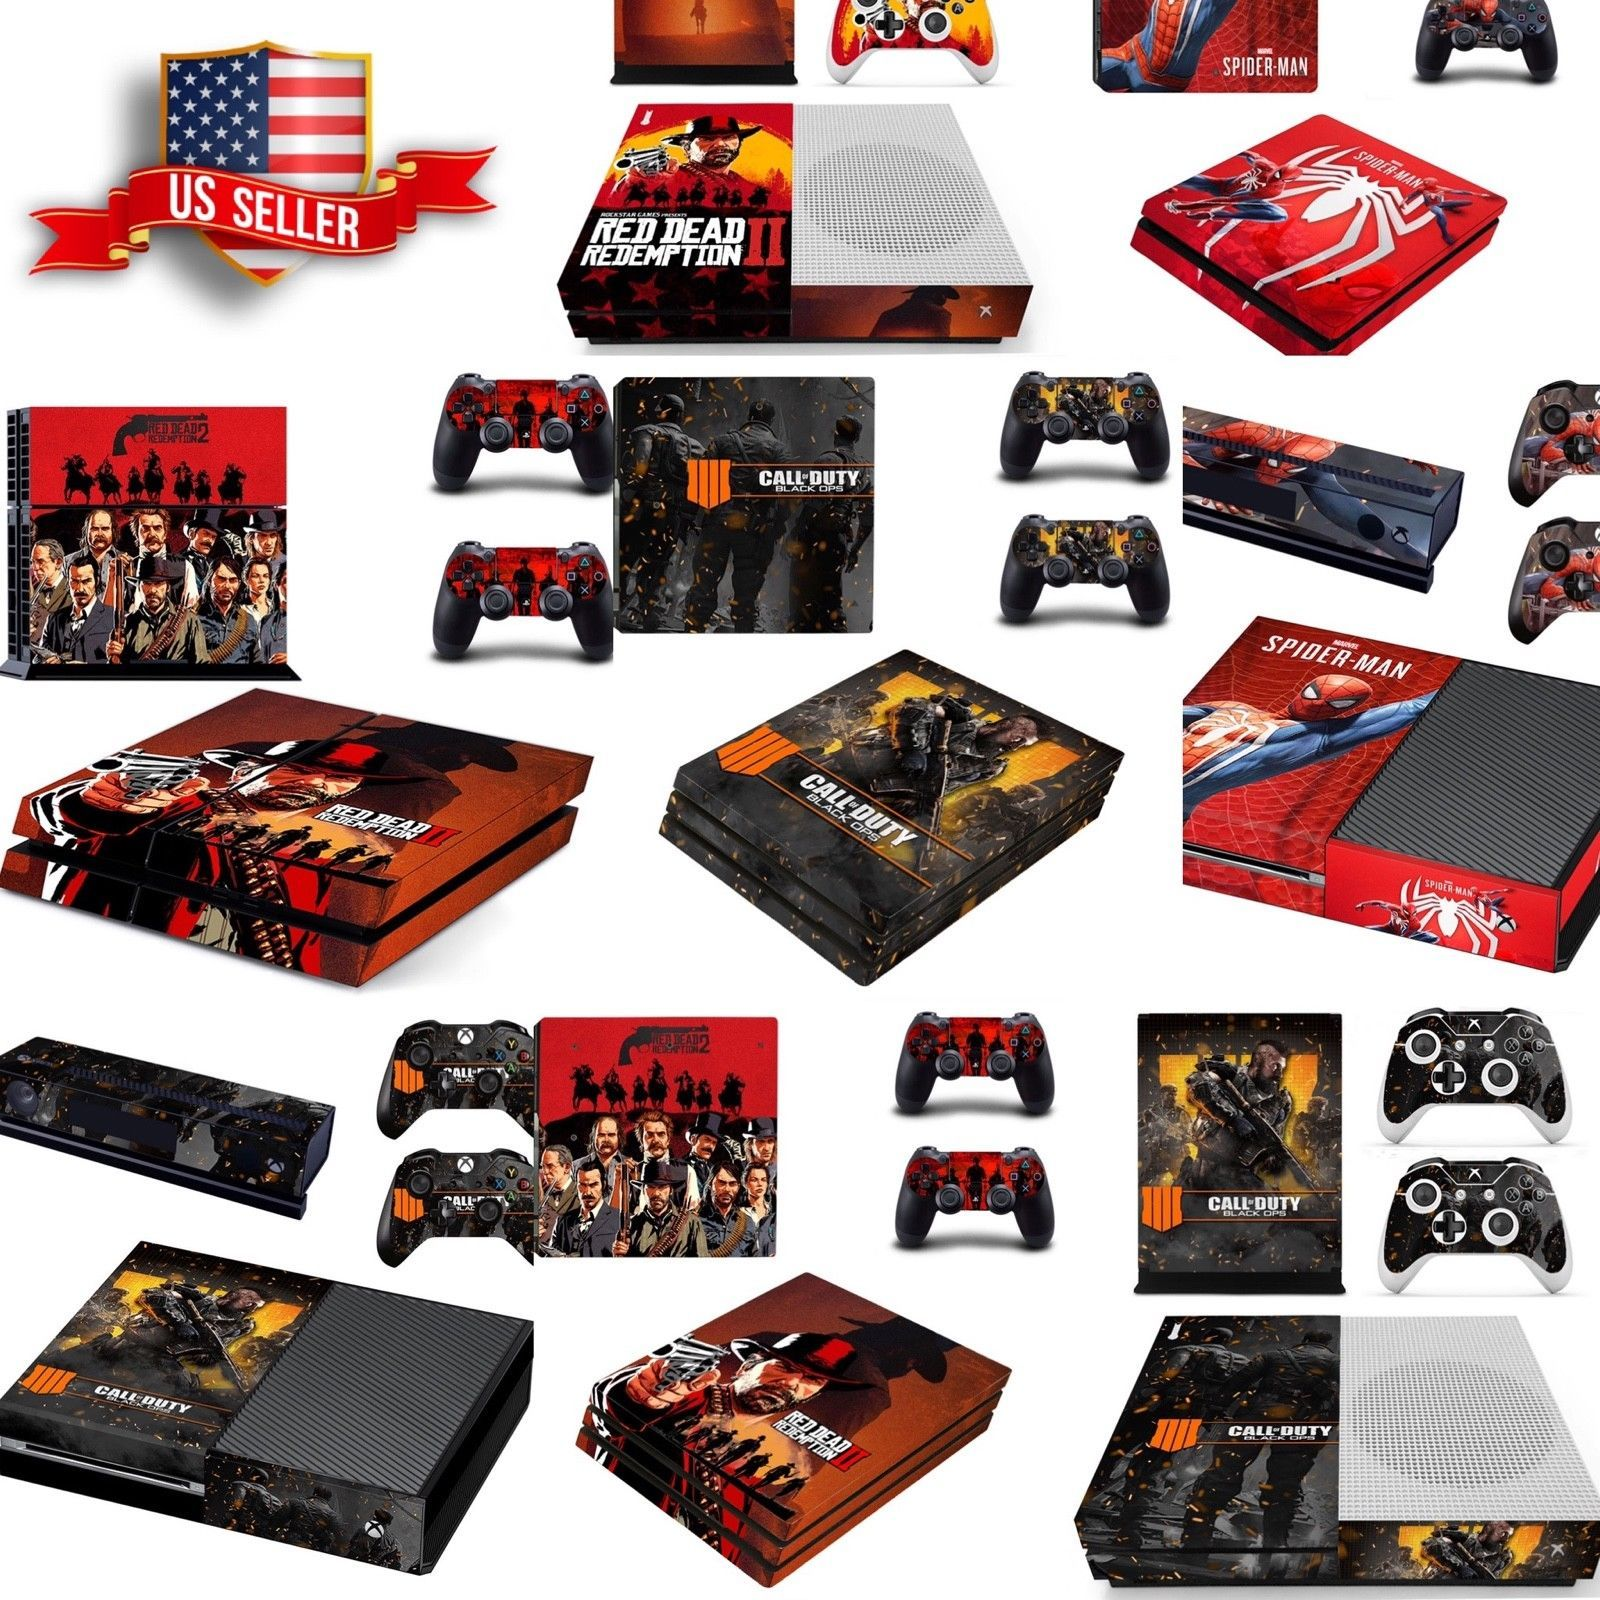 Ps4 pro wrap skin sticker ps4 slim xbox one s 360 console skin vinyl decal we sell fortnite accounts and loot crates cheap at bushcampers net